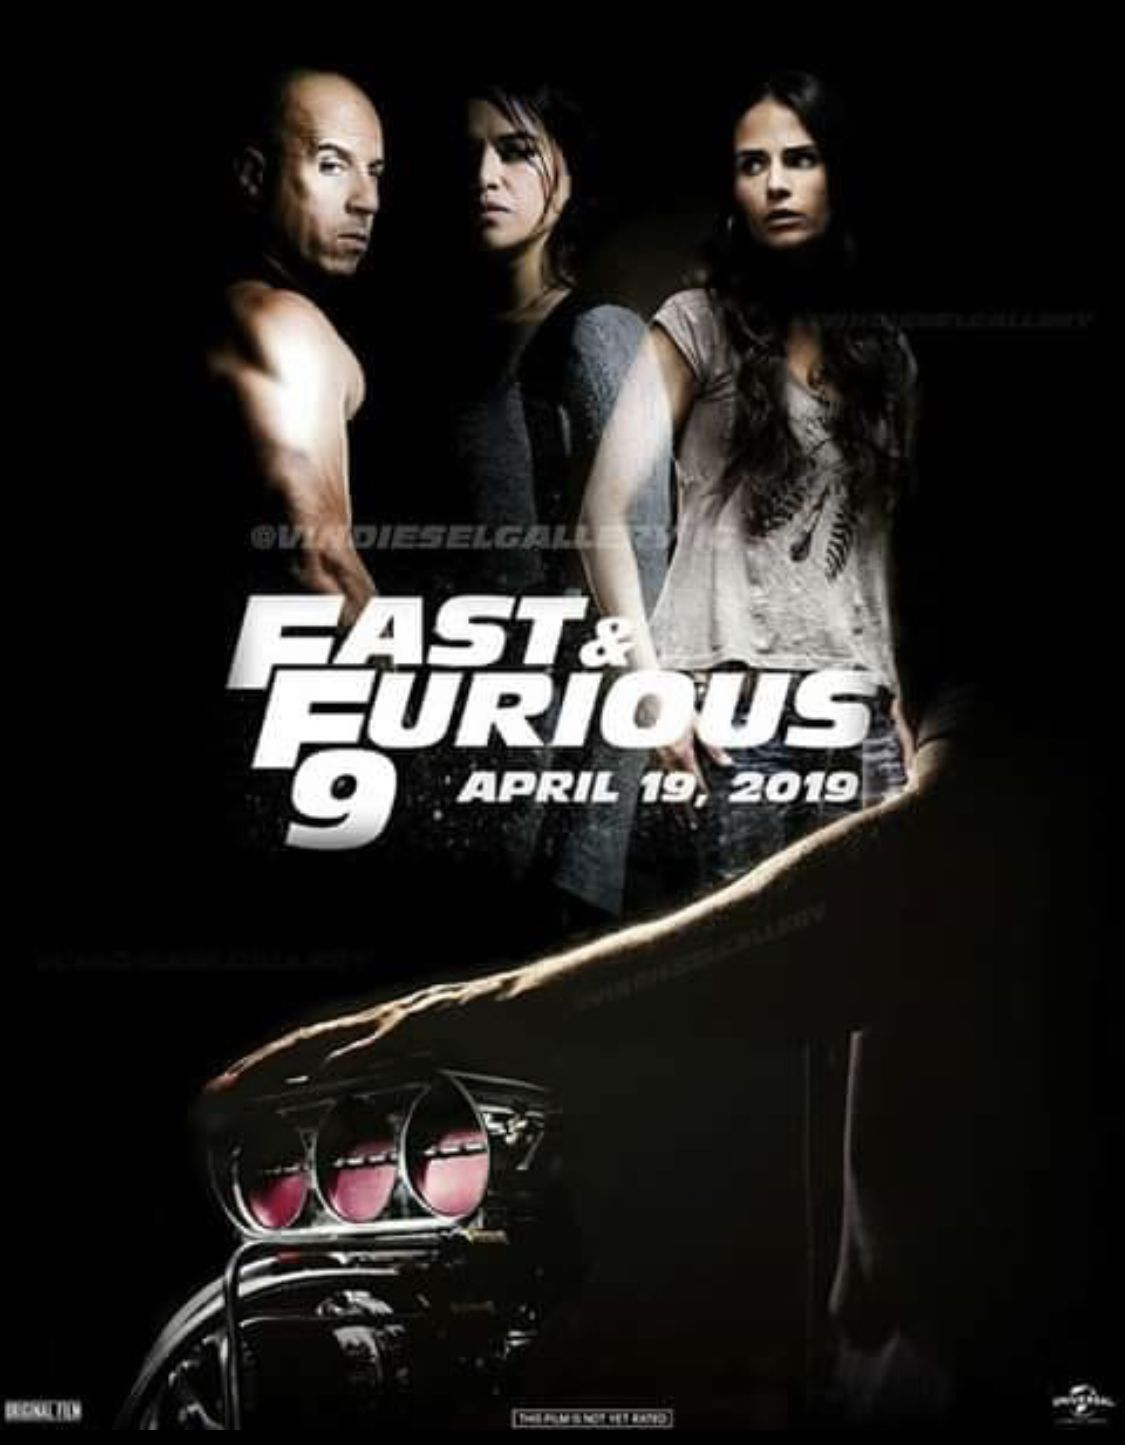 Fast furious 9 fast and furious movie fast and